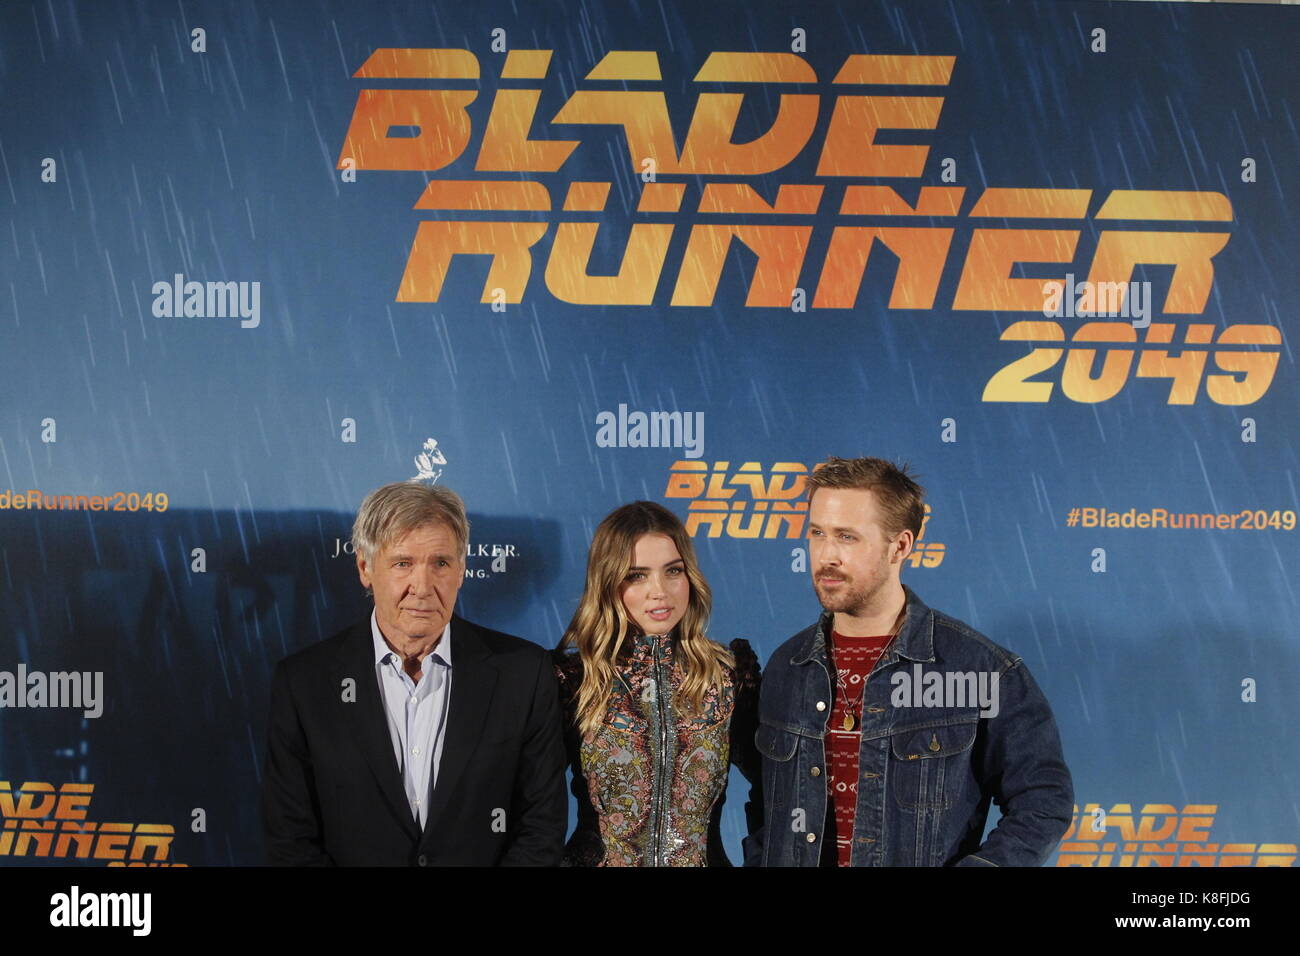 Madrid, Madrid, Spain. 19th Sep, 2017. Harrison Ford, Ana de Armas and Ryan Gosling attend 'Blade Runner 2049' photocall at Villa Magna Hotel on September 19, 2017 in Madrid, Spain. Credit: Jack Abuin/ZUMA Wire/Alamy Live News Stock Photo